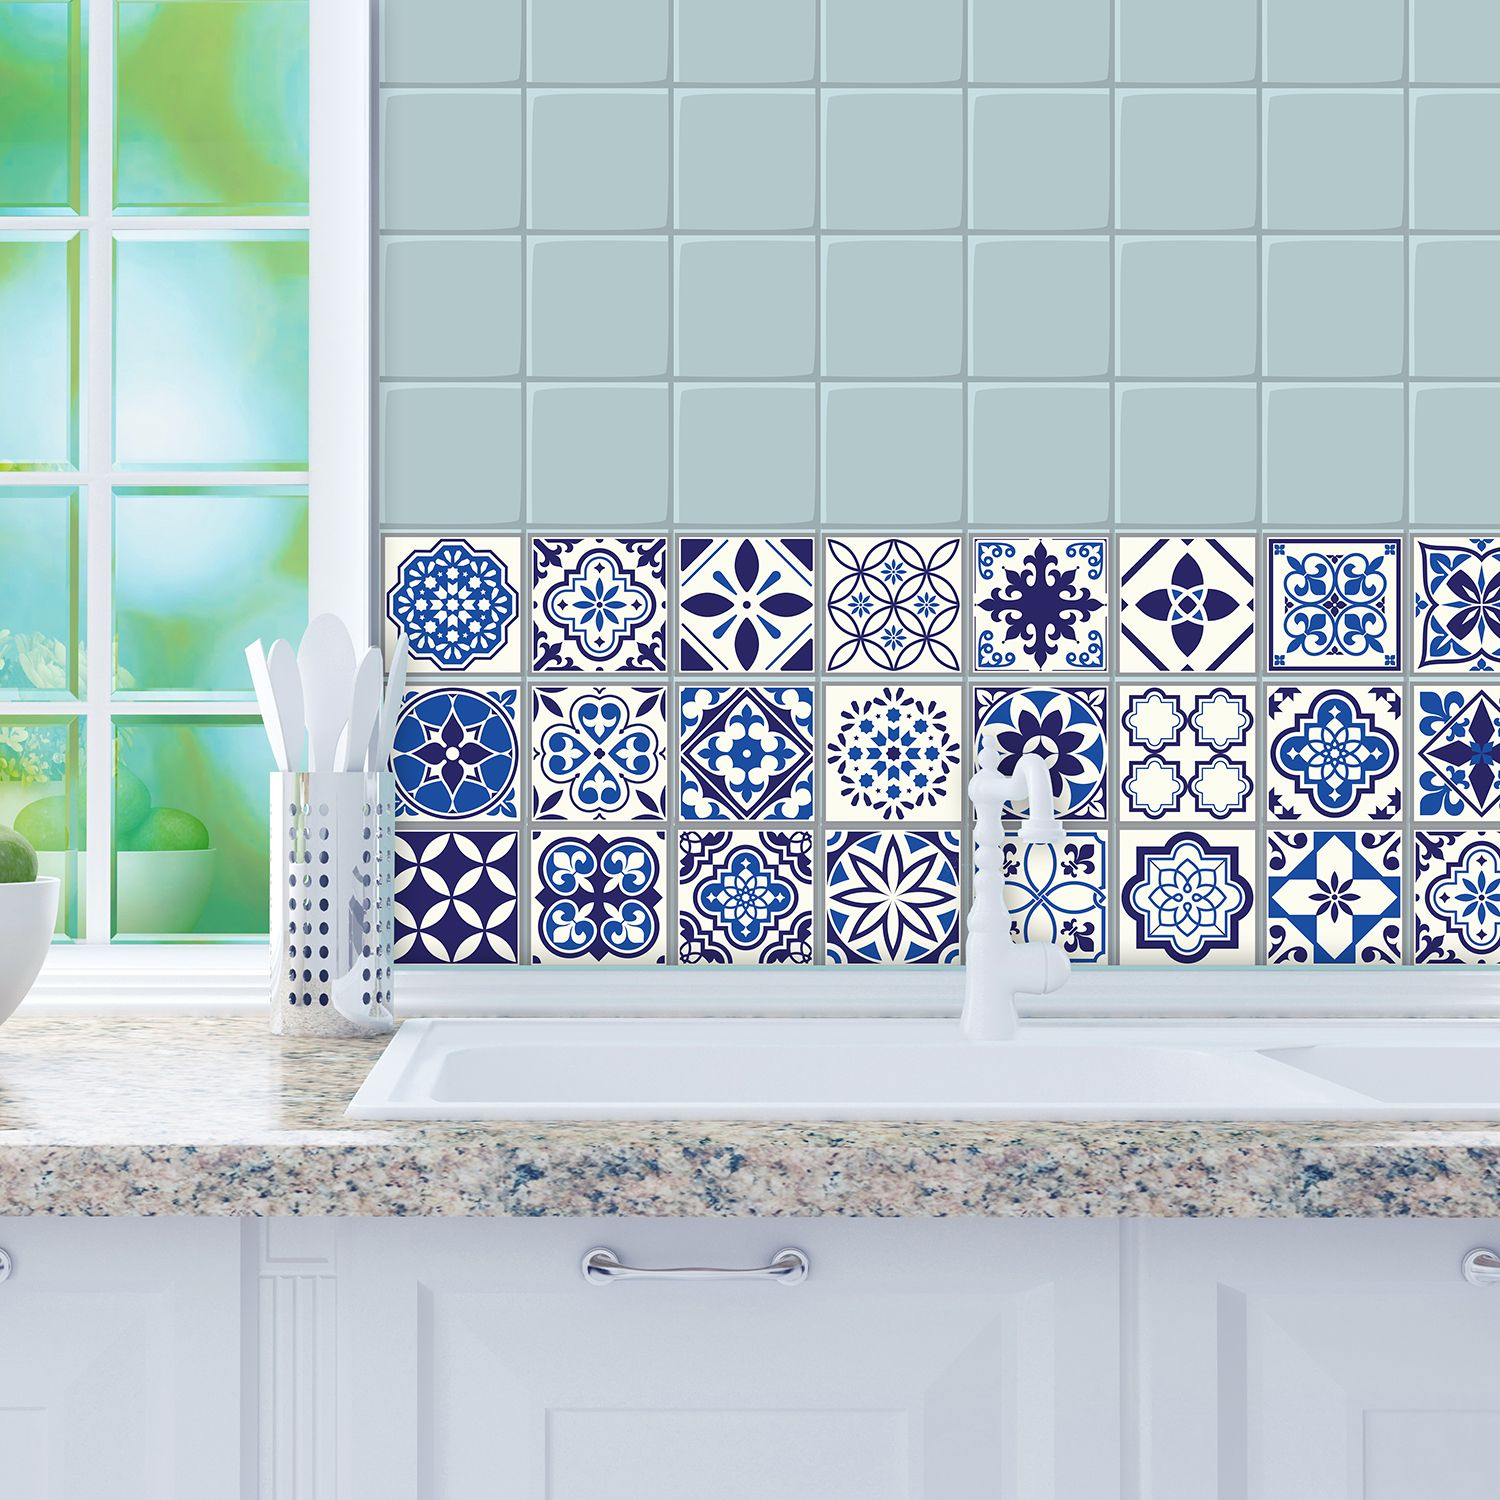 WT1001 - Spanish and Moroccan Blue Tiles Wall Stickers Mix - 10 cm  x 10 cm - 24 pcs.